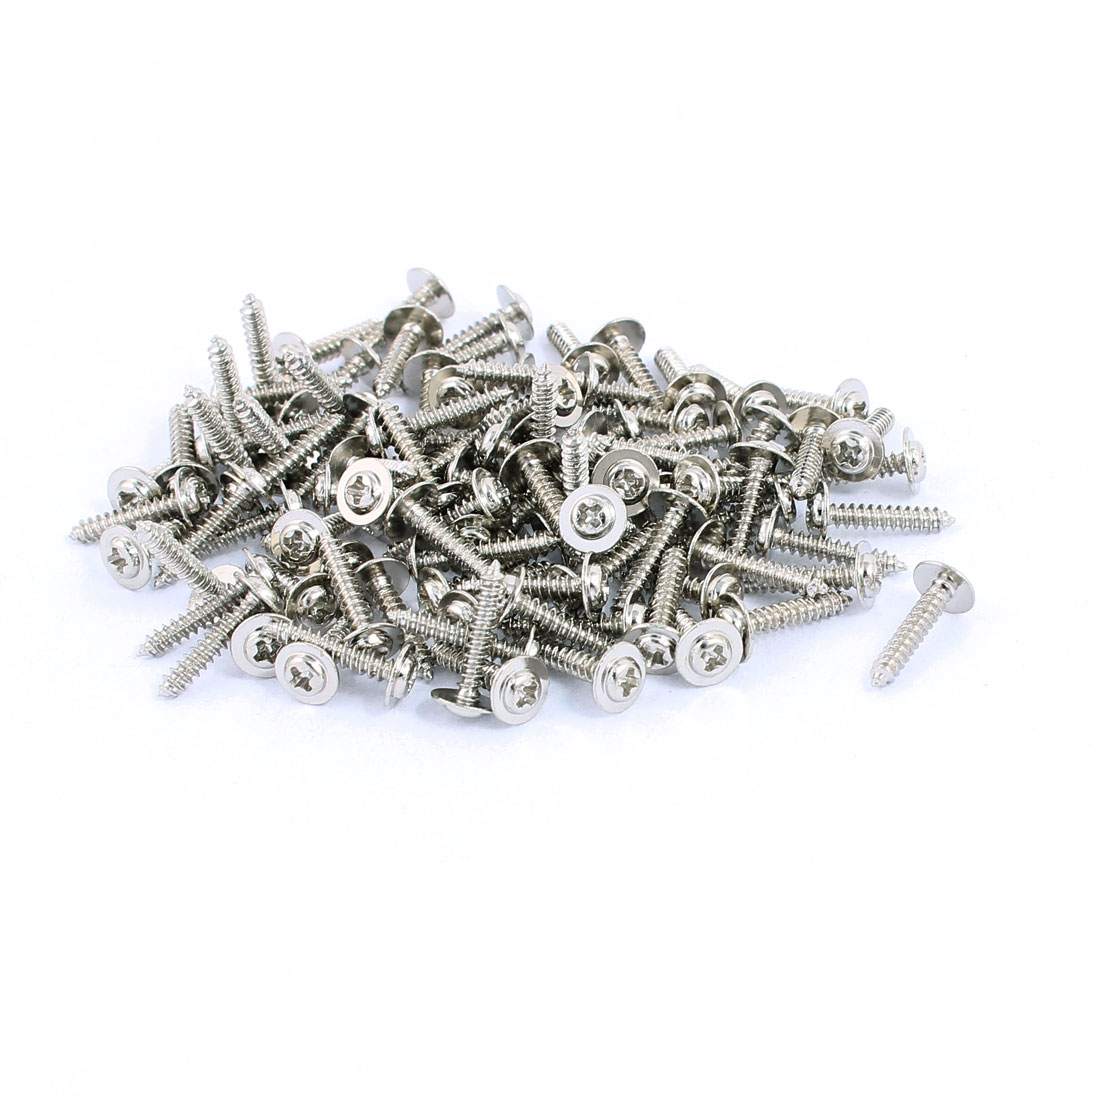 100pcs 2.3x12 Stainless Steel Phillips Head Self-Tapping Screws(PWA) with Washer